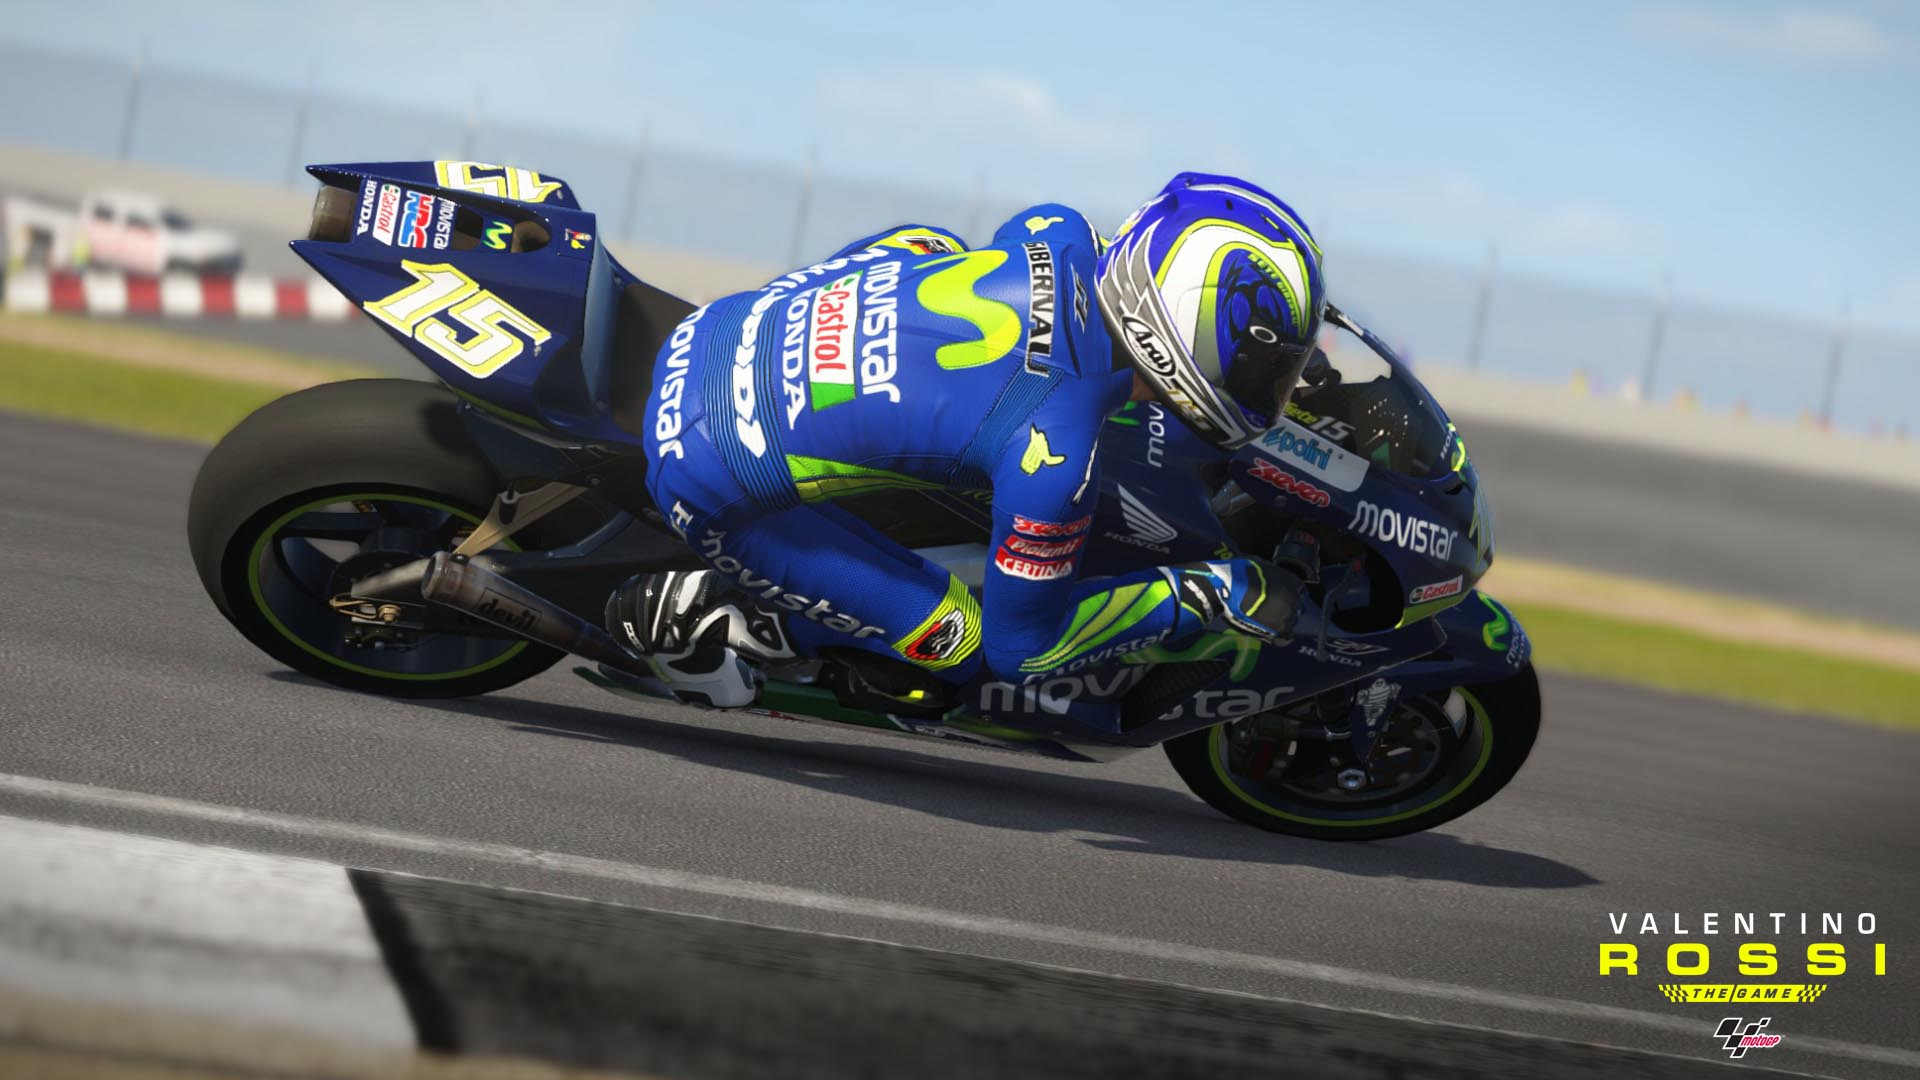 MotoGP Legendary Bikes screenshot